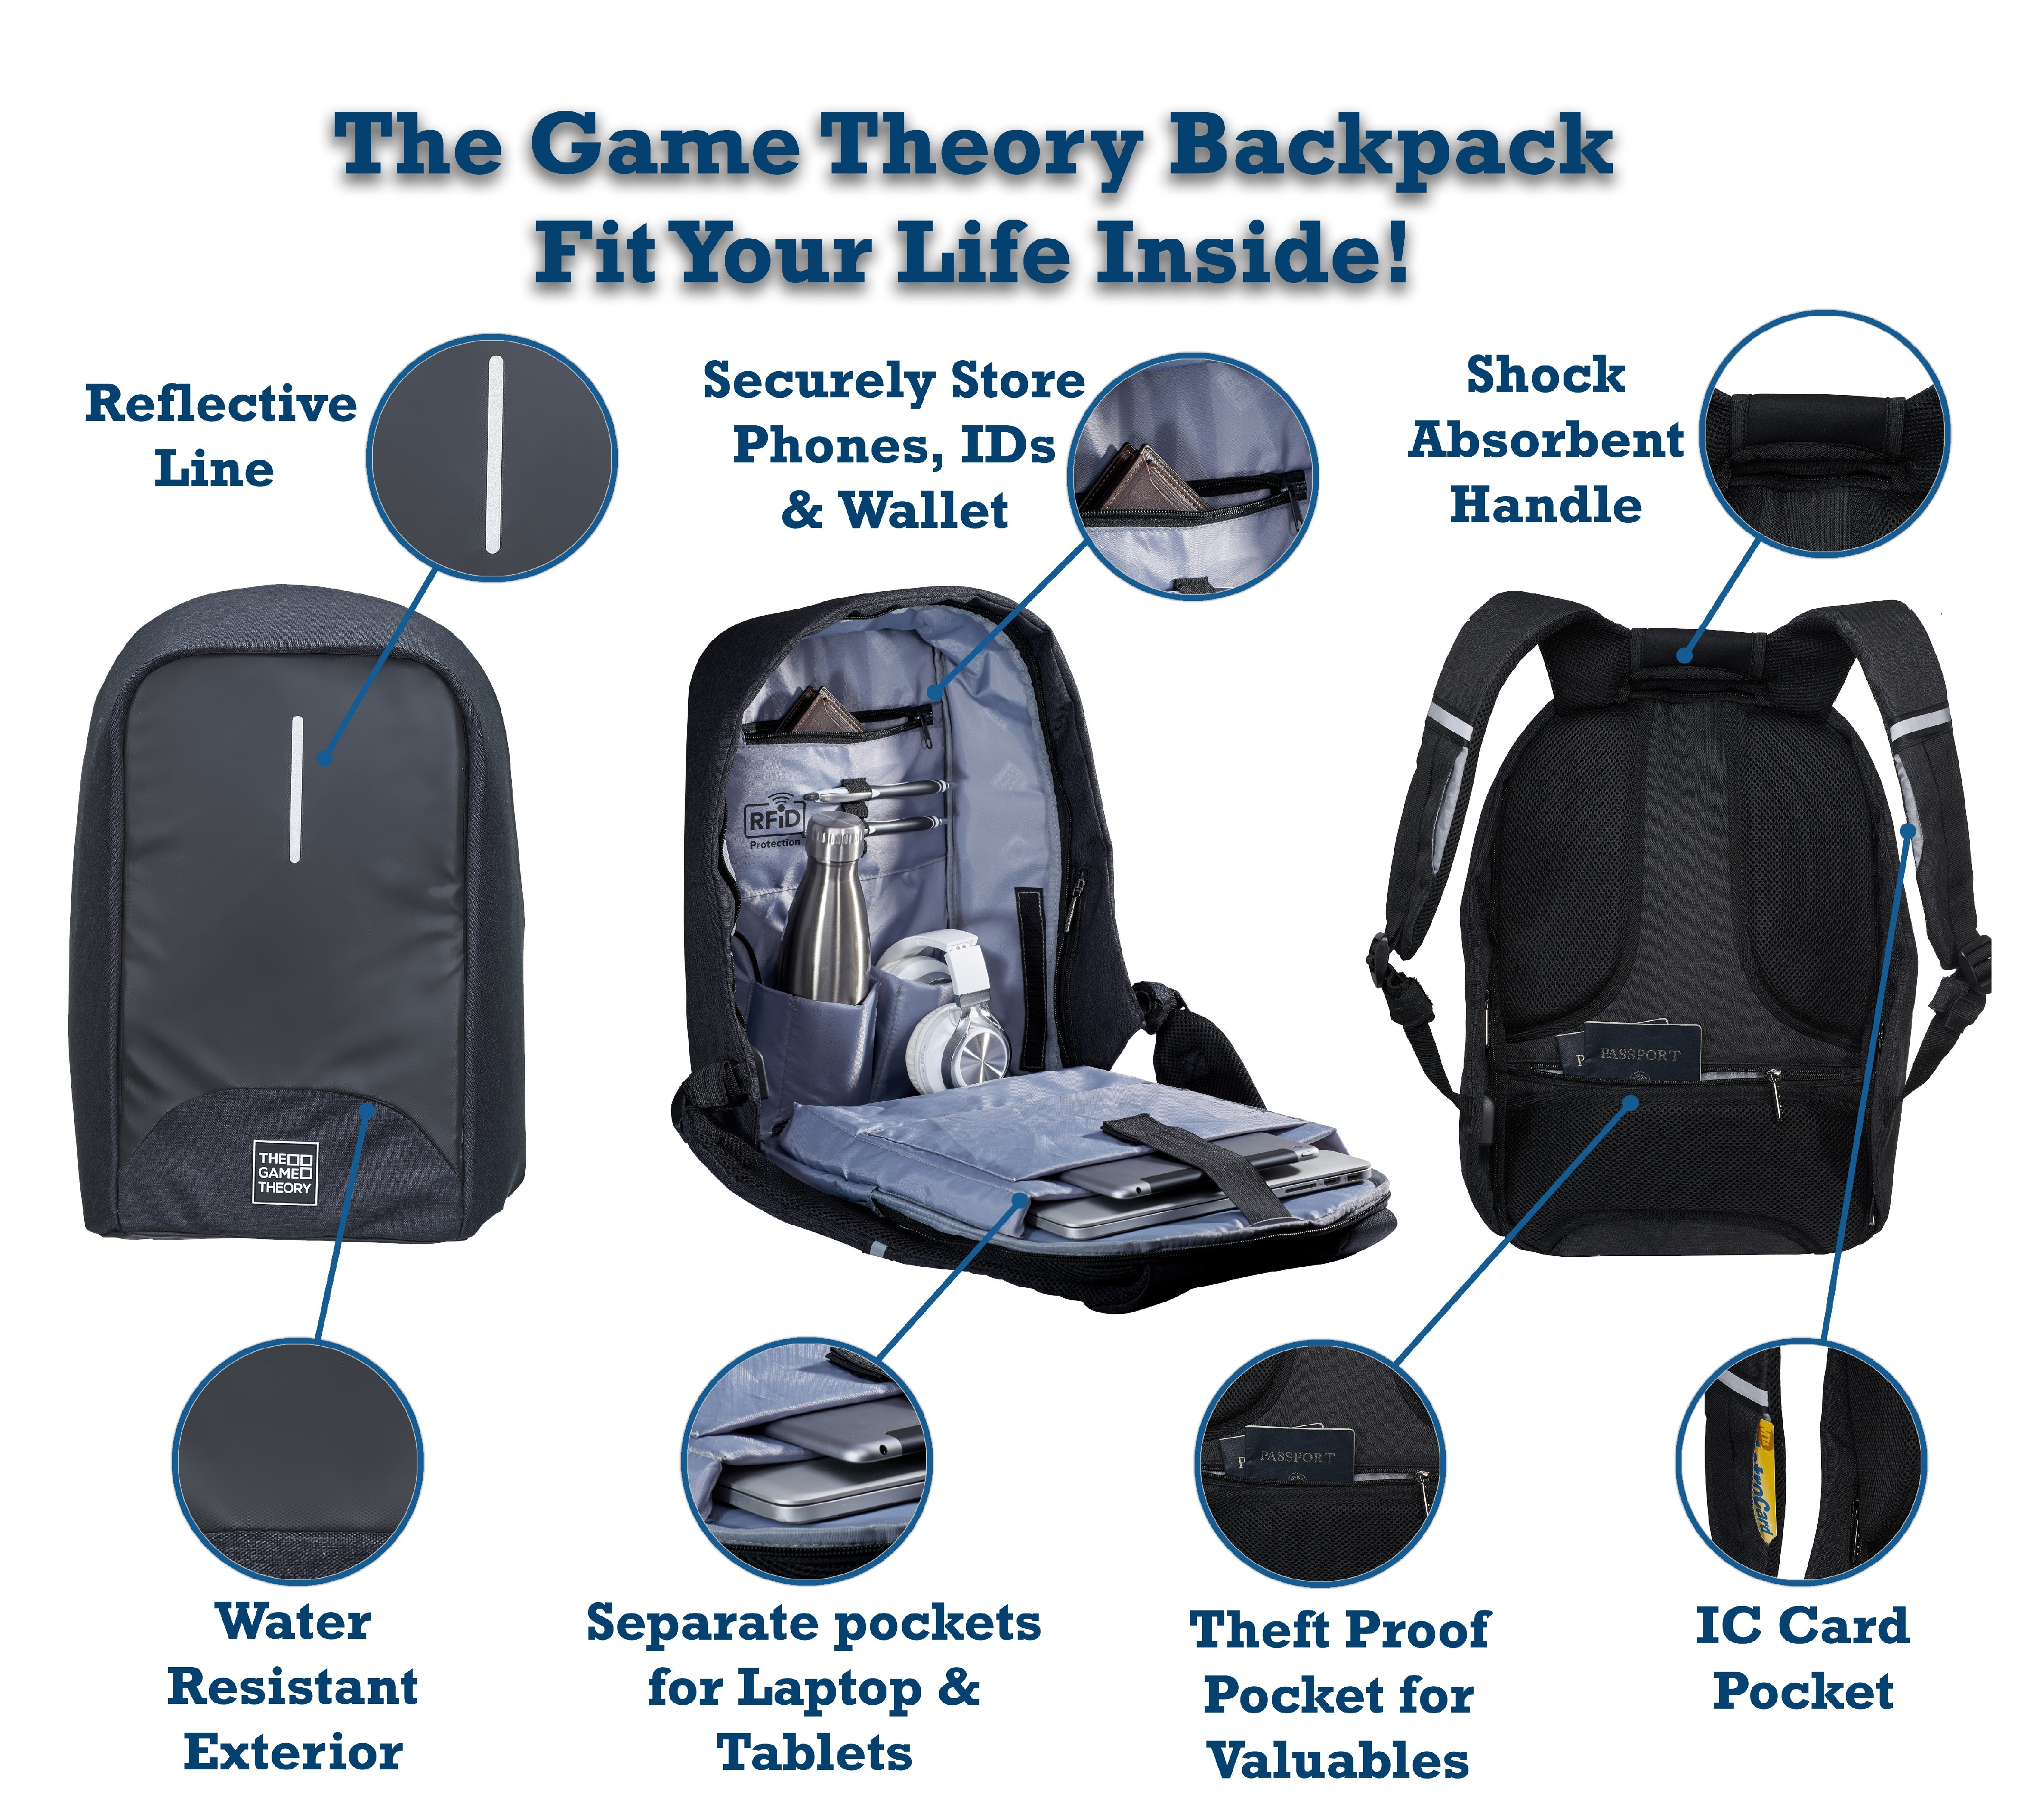 Secure gamging console bookbag. The Game Theory book bag diagram